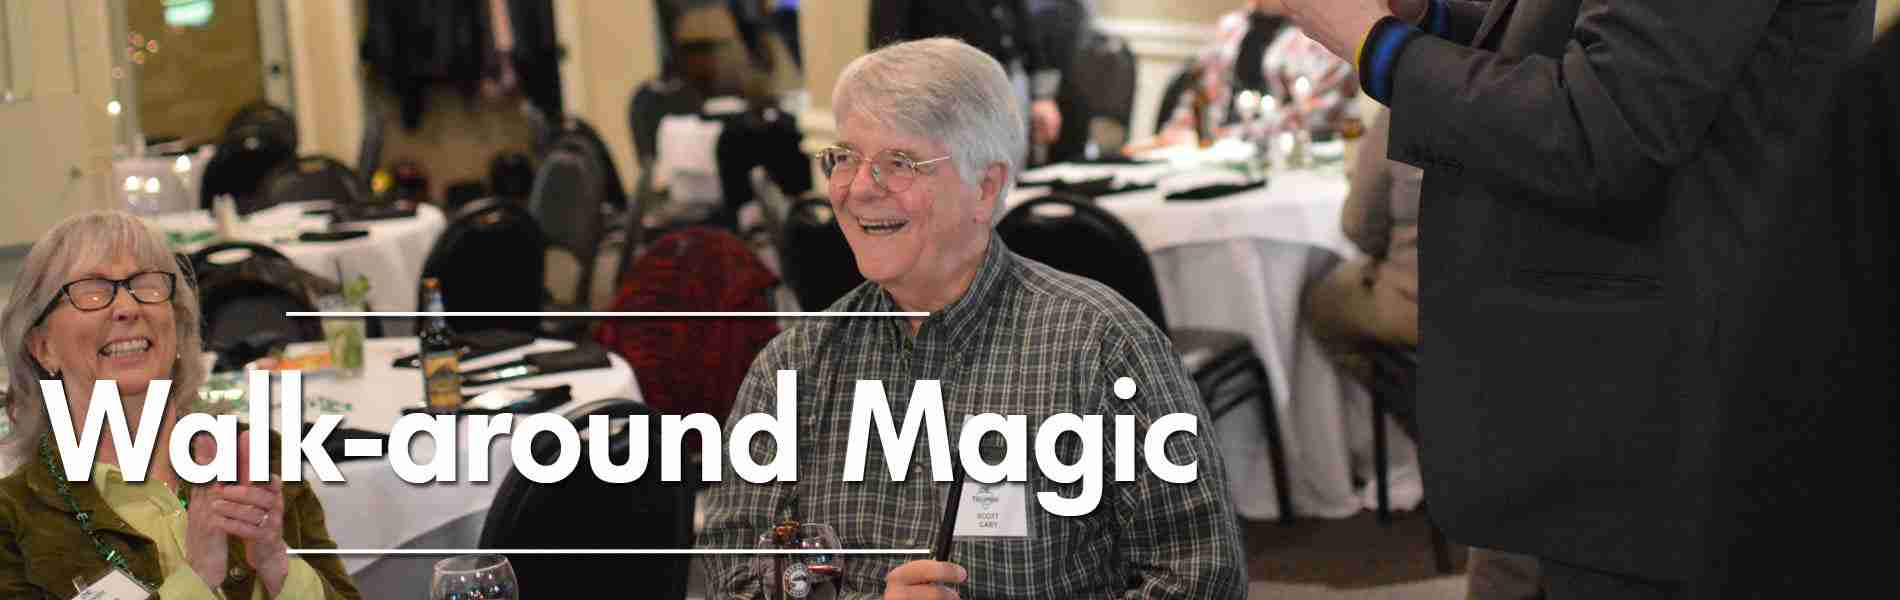 Portland and Seattle corporate entertainer performs walk-around roaming magic